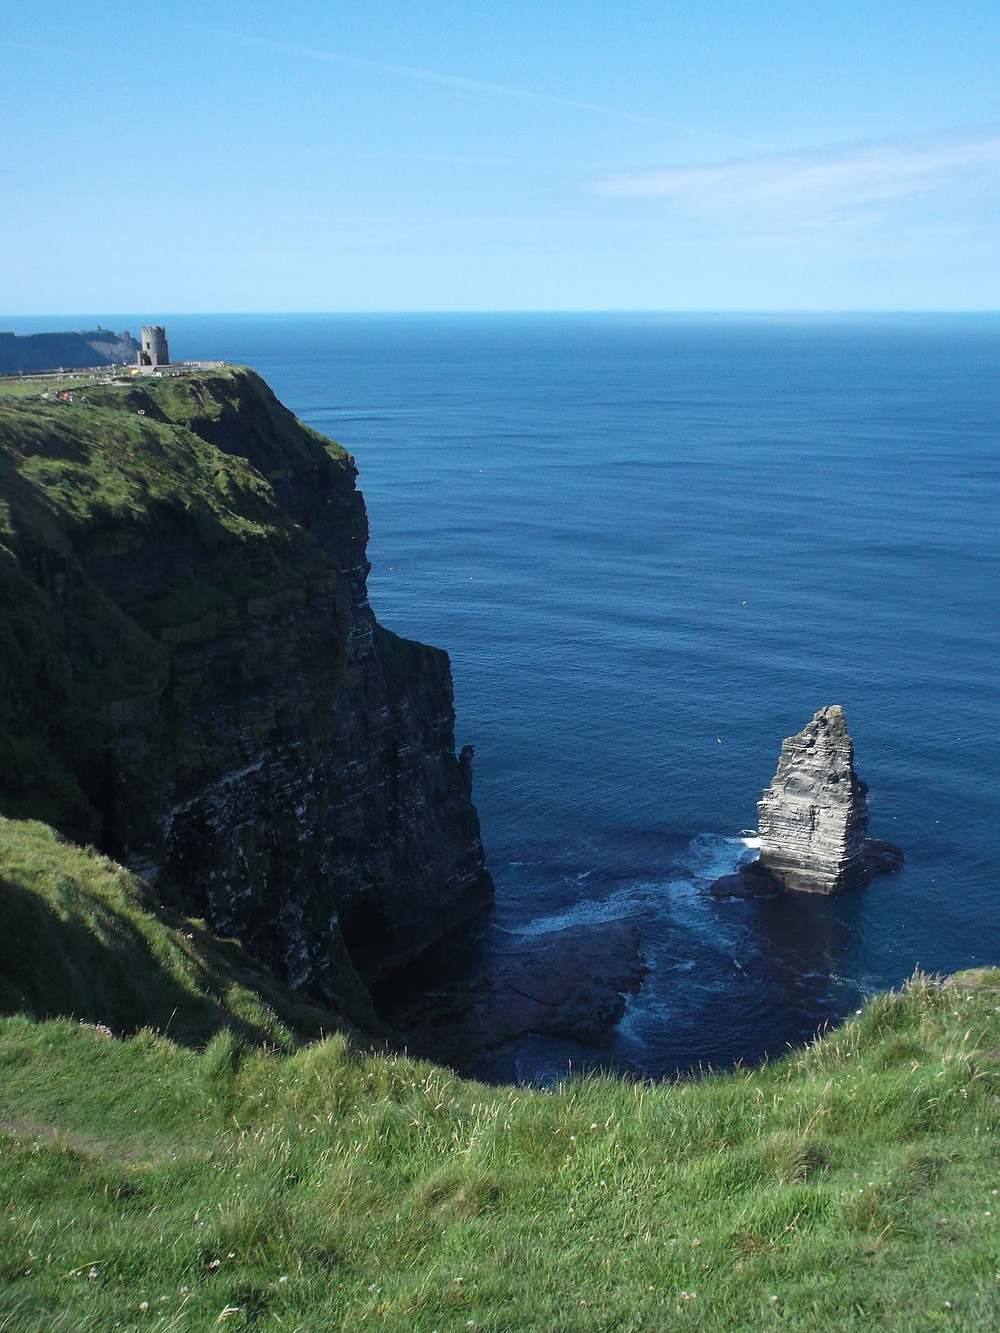 View Along the Way to the Cliffs